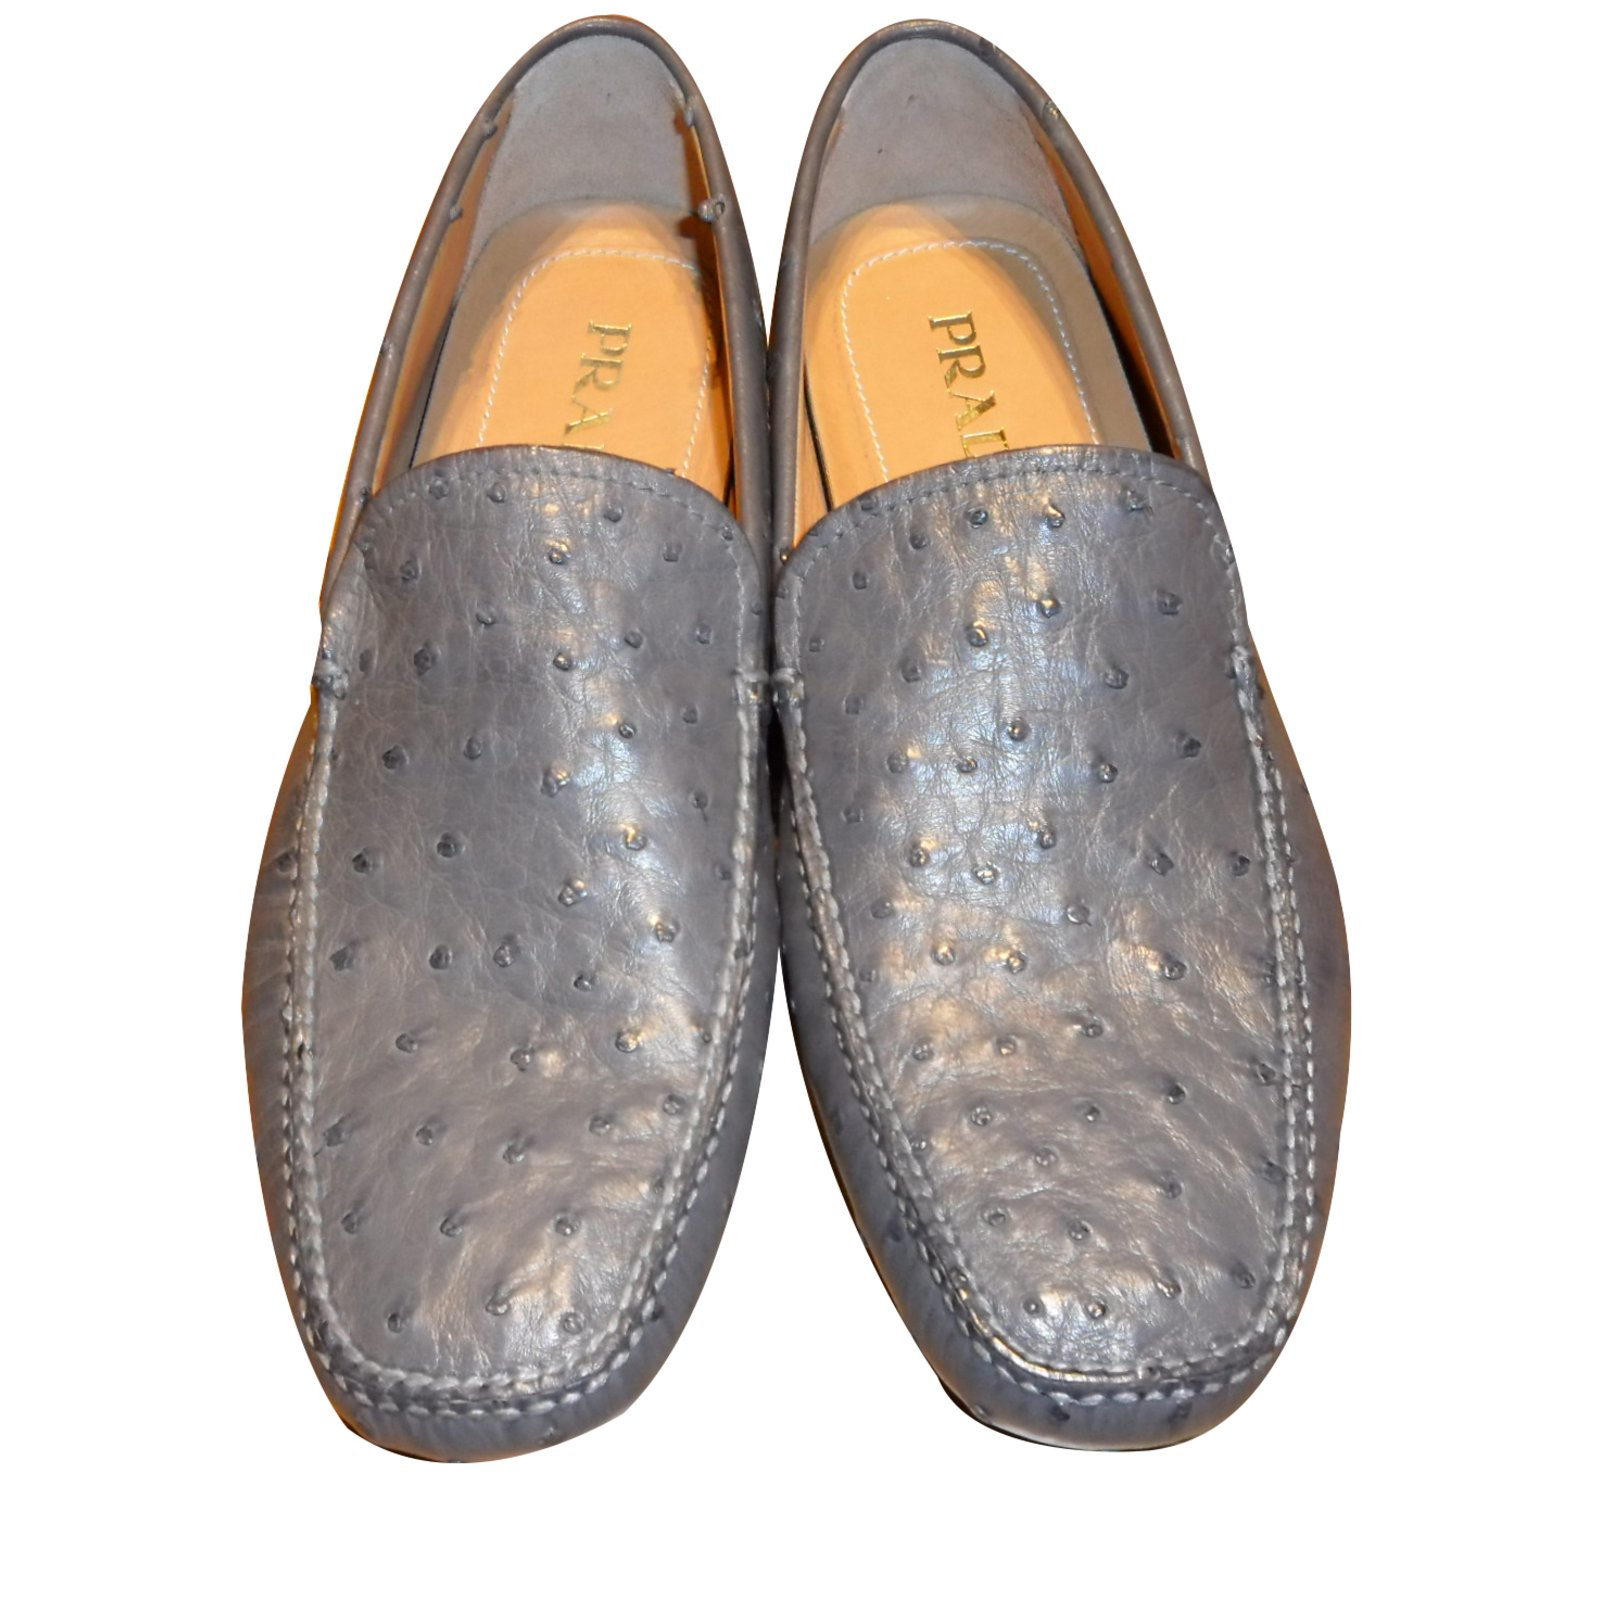 d4a9a8be8337 ... coupon code for prada prada brand new mens ostrich leather driving  shoes loafers slip ons other